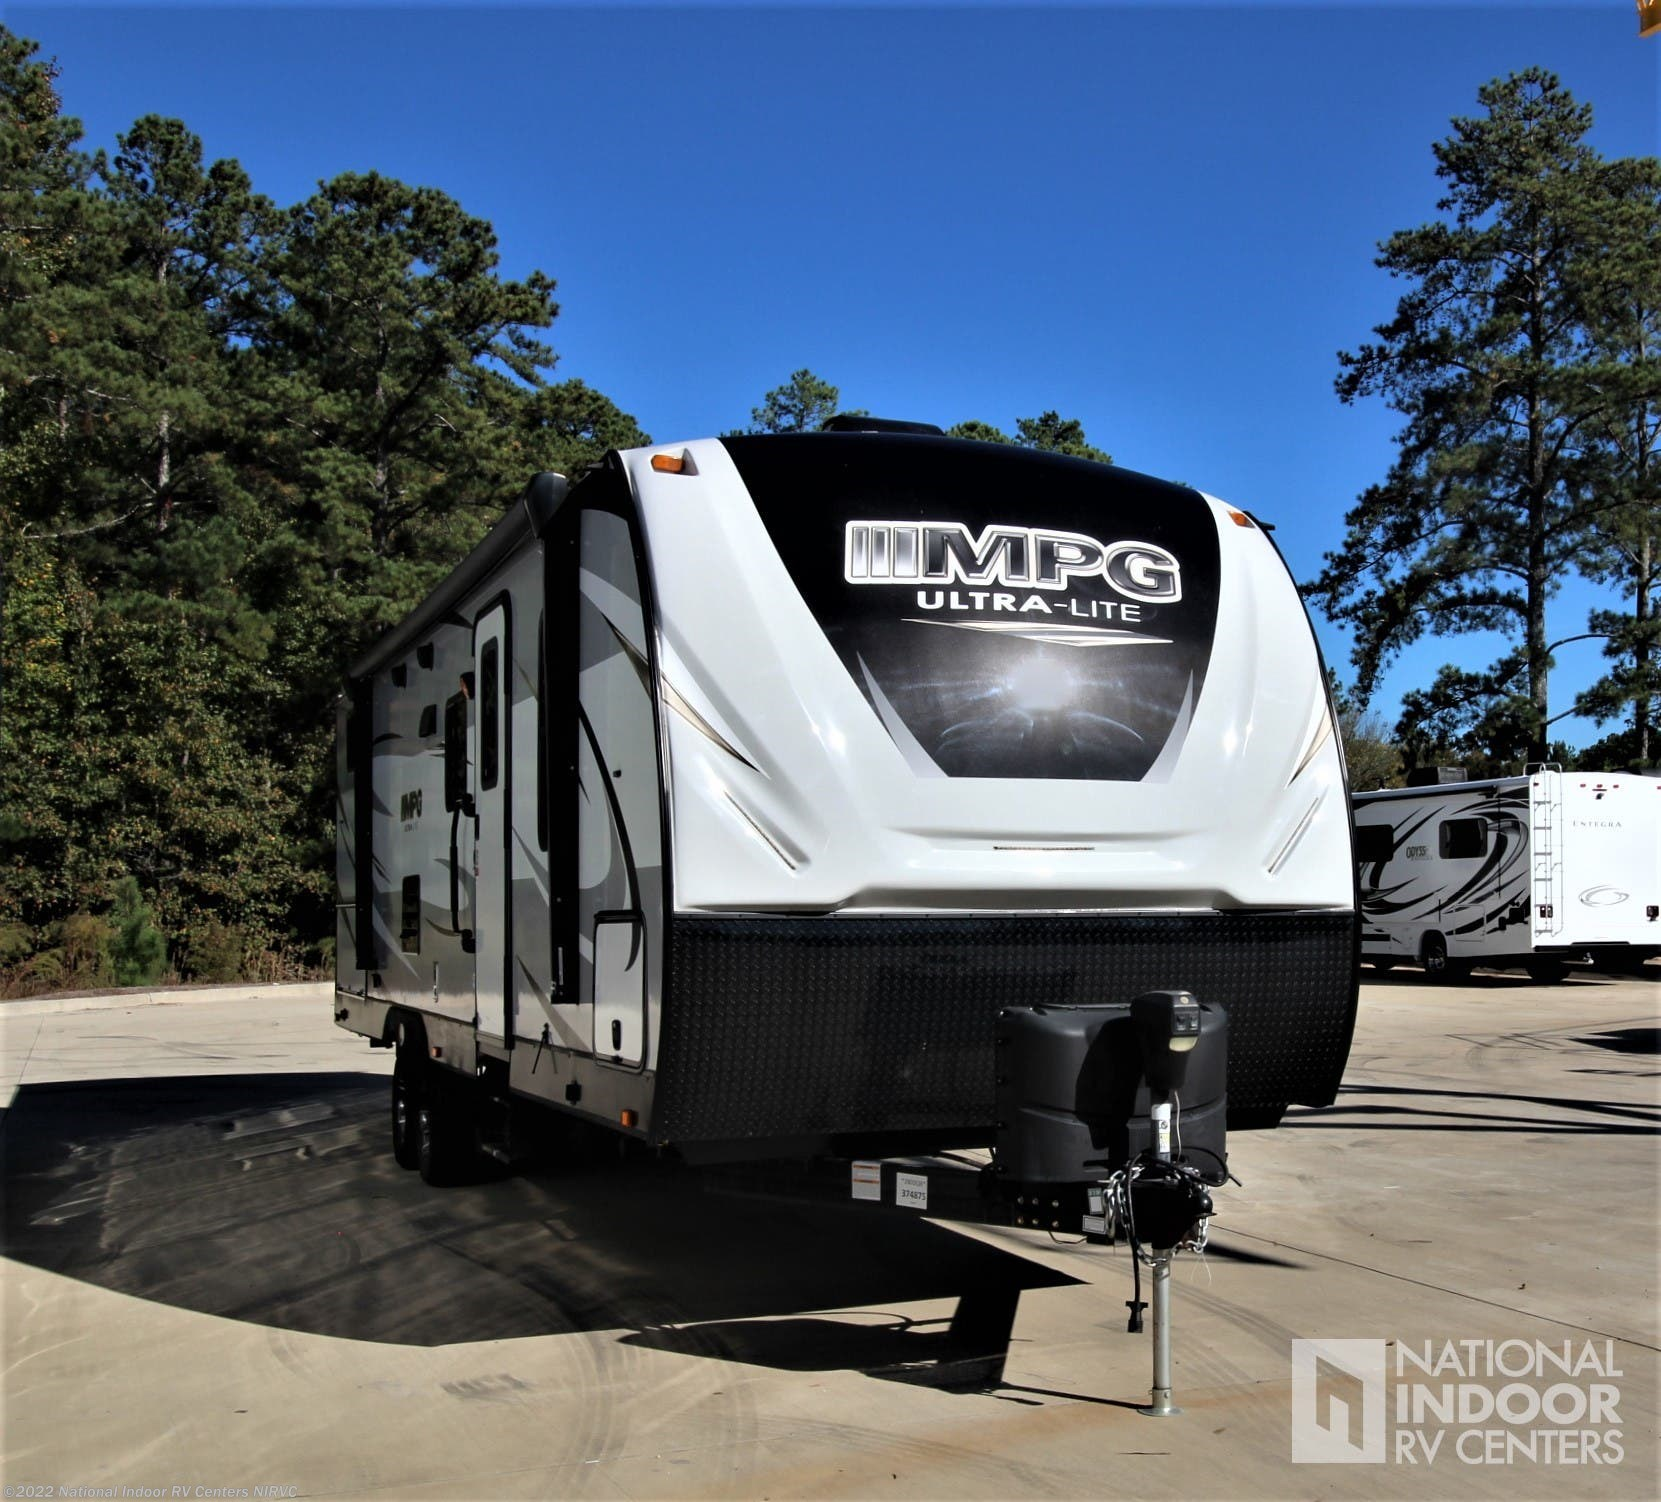 Used Rv For Sale In Ga >> 2018 Cruiser Rv Rv Mpg 2800qb For Sale In Lawrenceville Ga 30043 4448bb